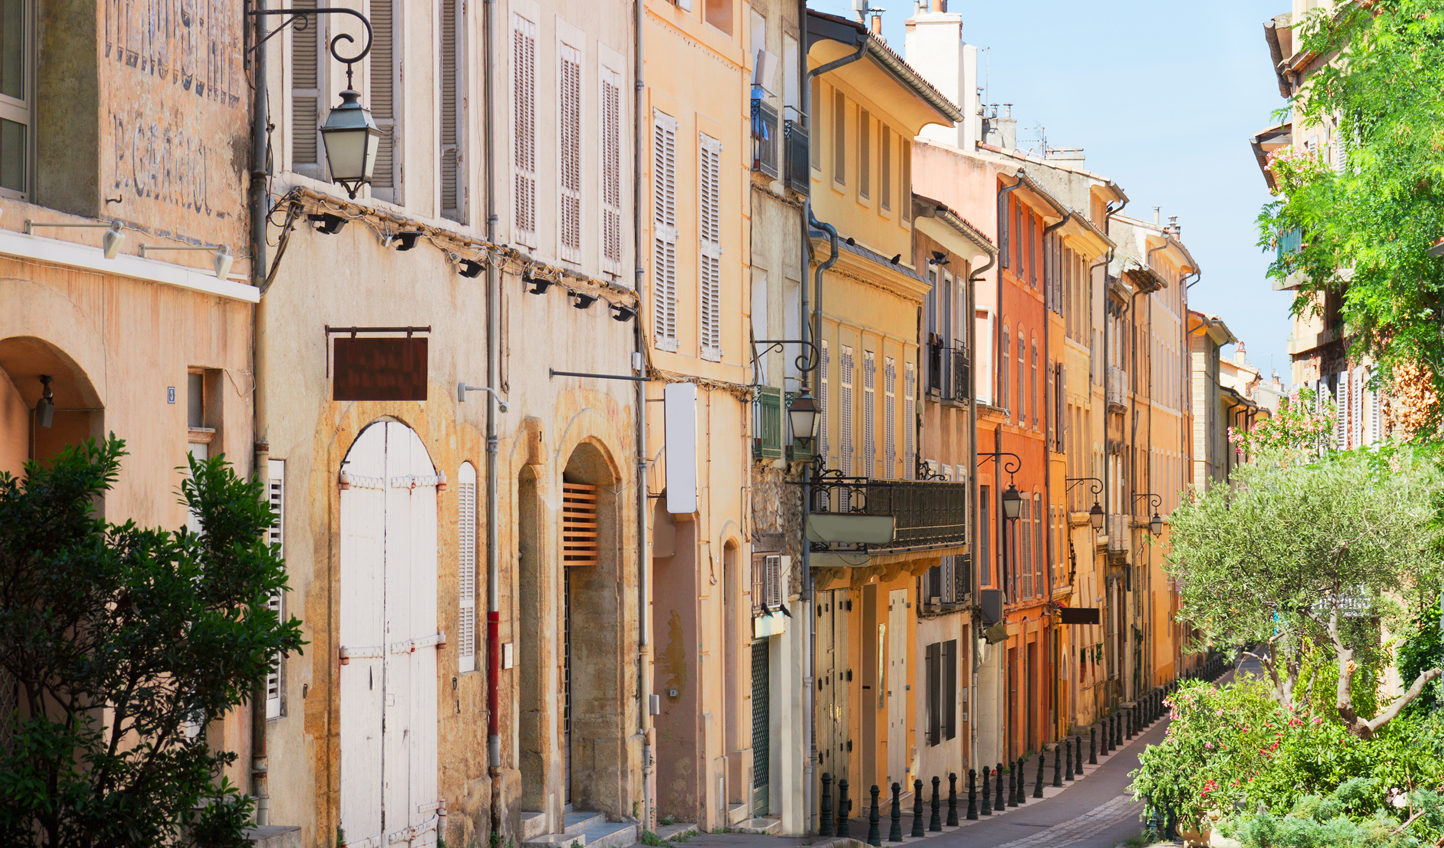 Stroll through cobbled streets in Aix-en-Provence